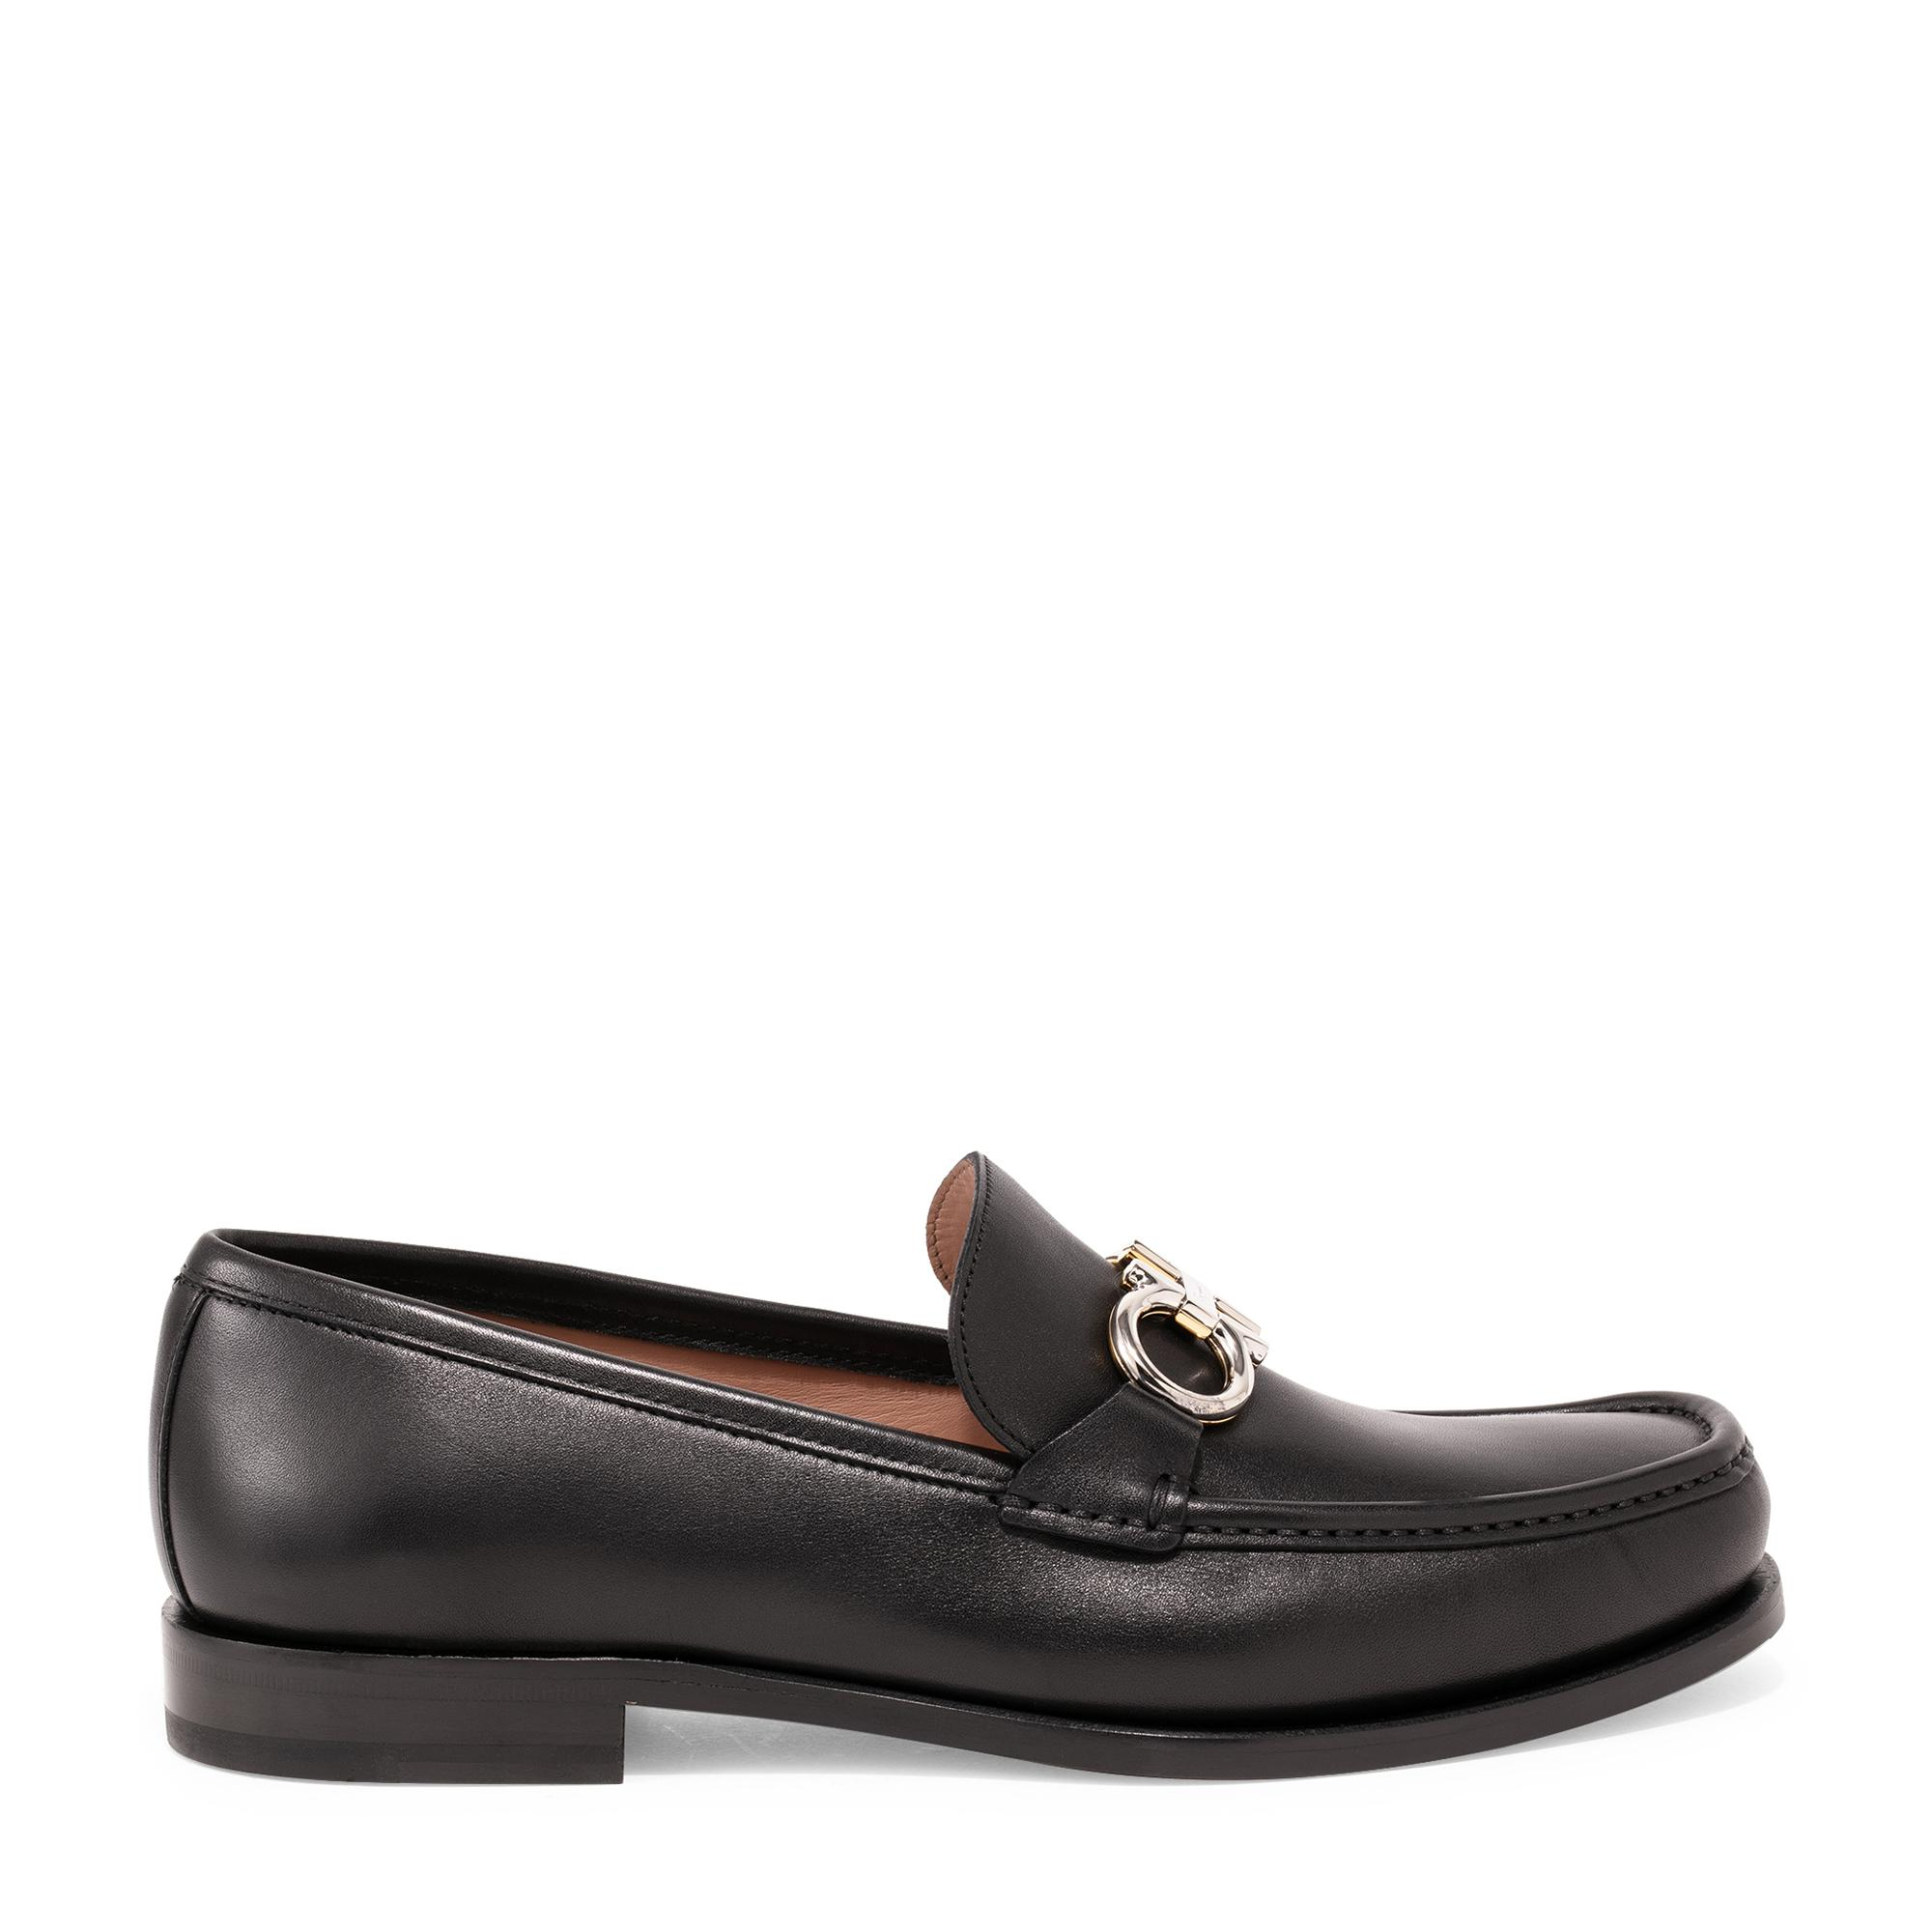 Rolo Gancini moccasin loafers